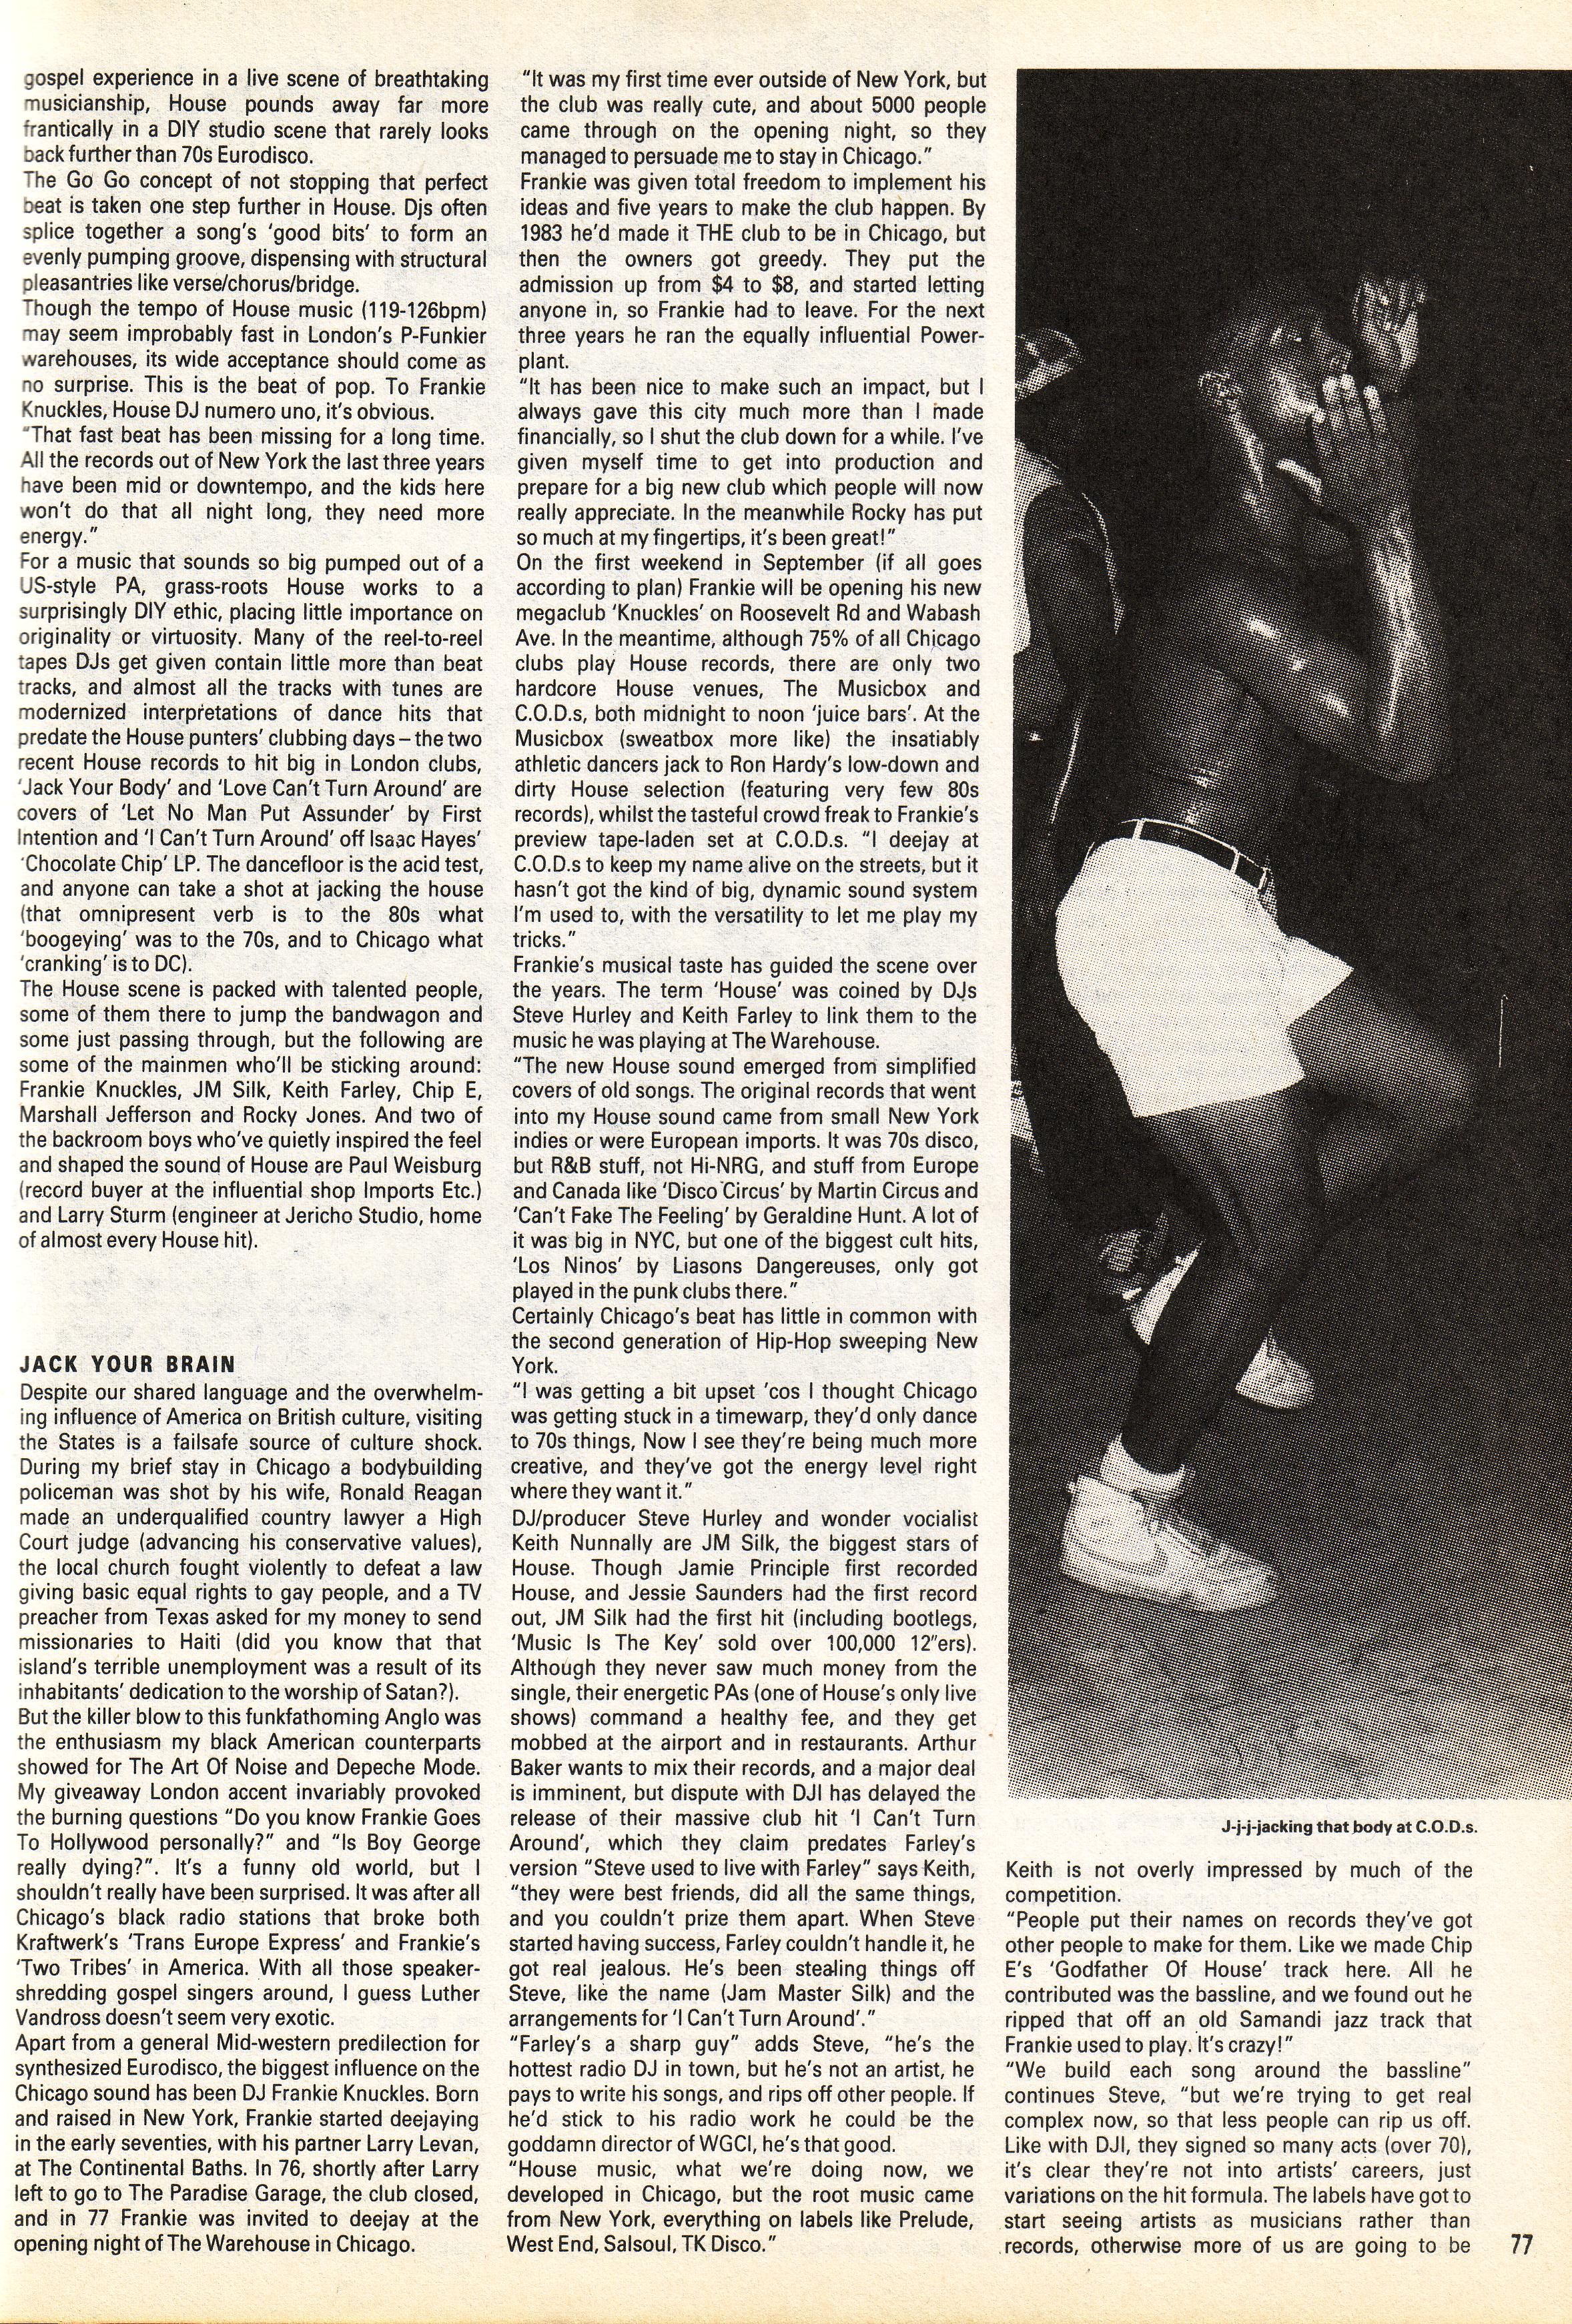 id-mag-issue-40-sep-1986-house-sound-of-chicago-2